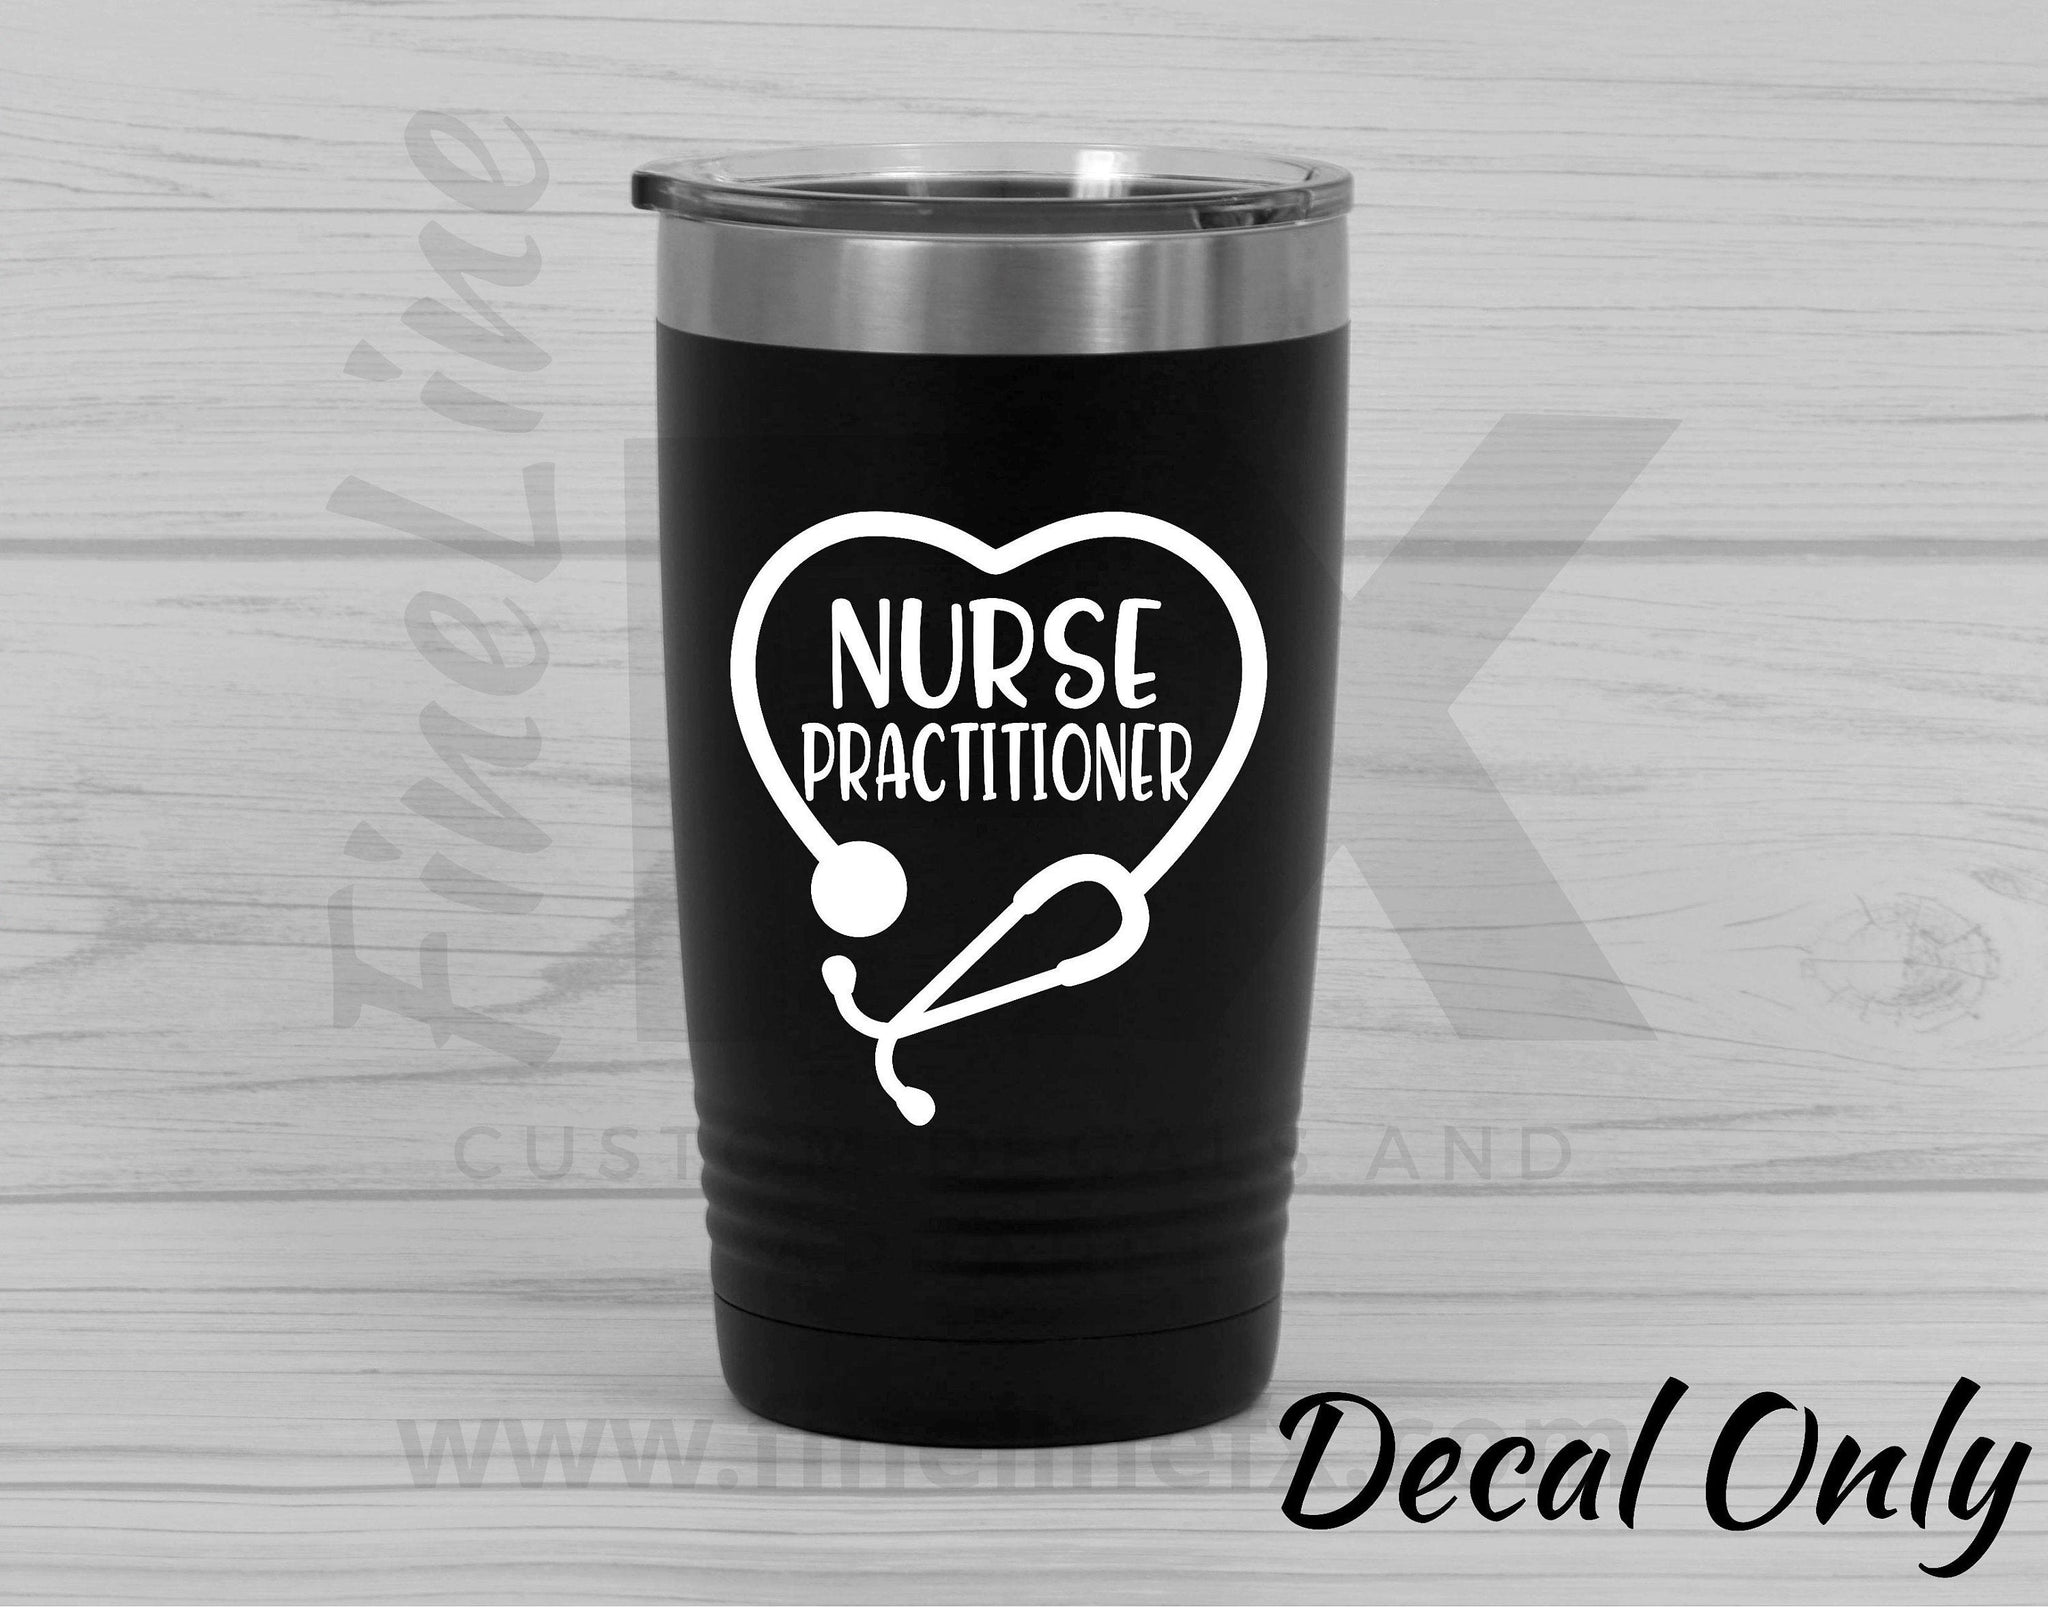 Nurse Practitioner Stethoscope Vinyl Decal Sticker